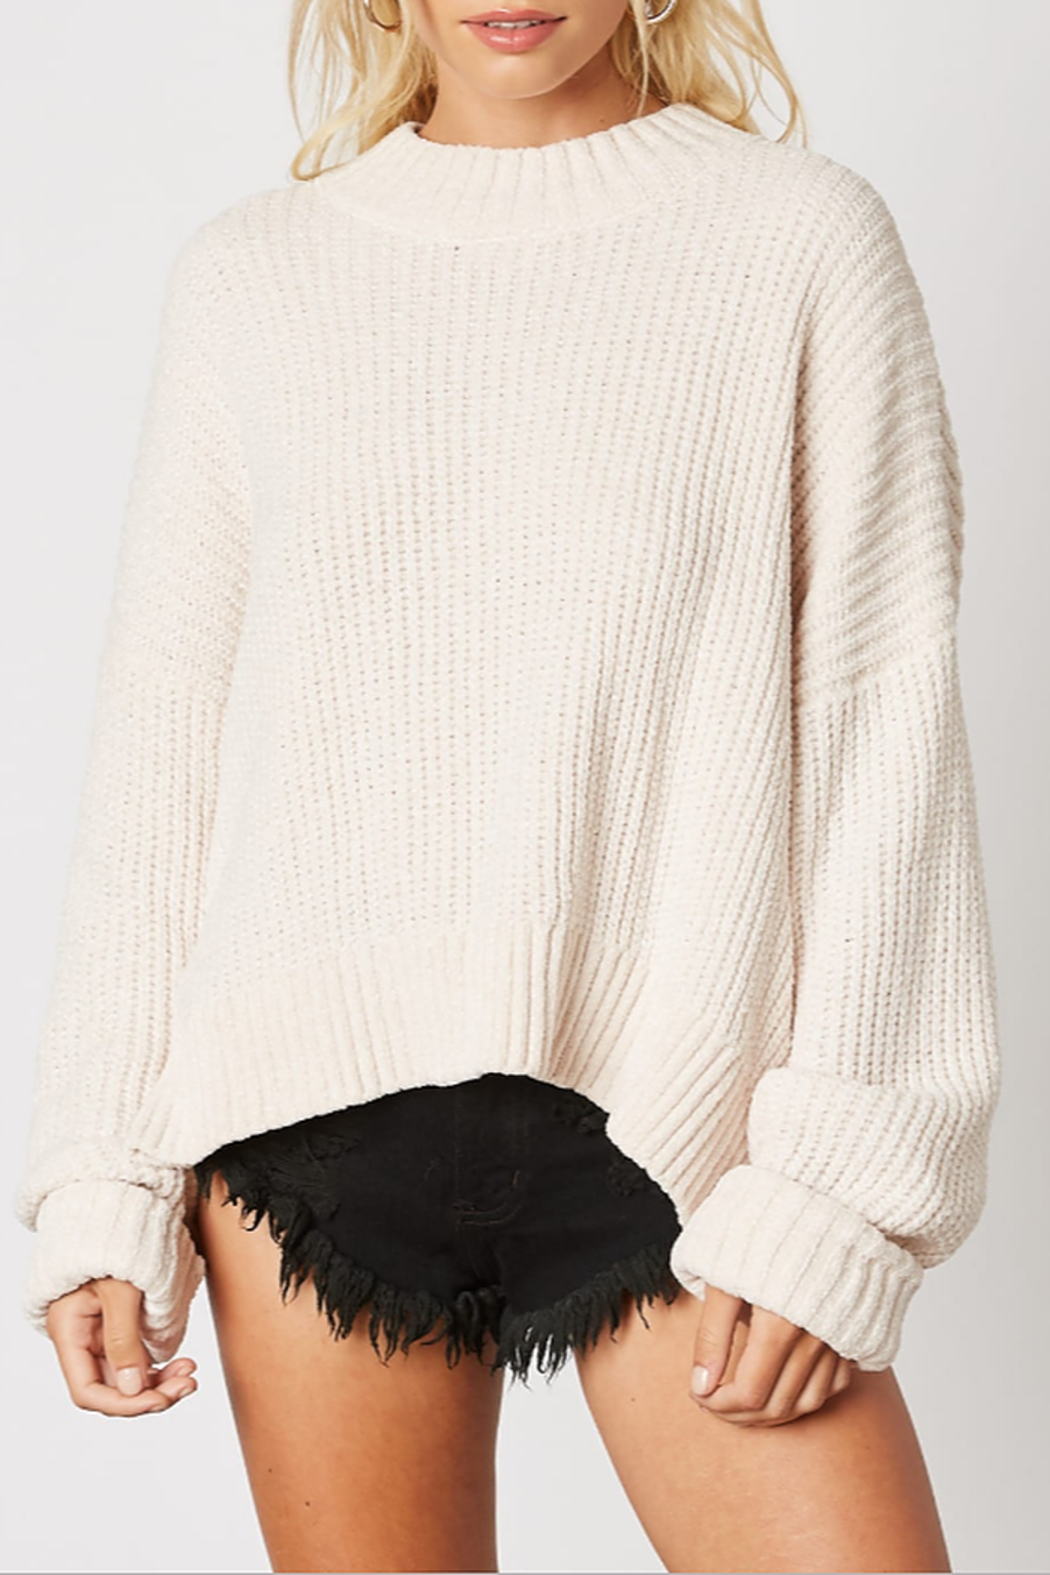 Cotton Candy Ribbed Knit Sweater - Main Image